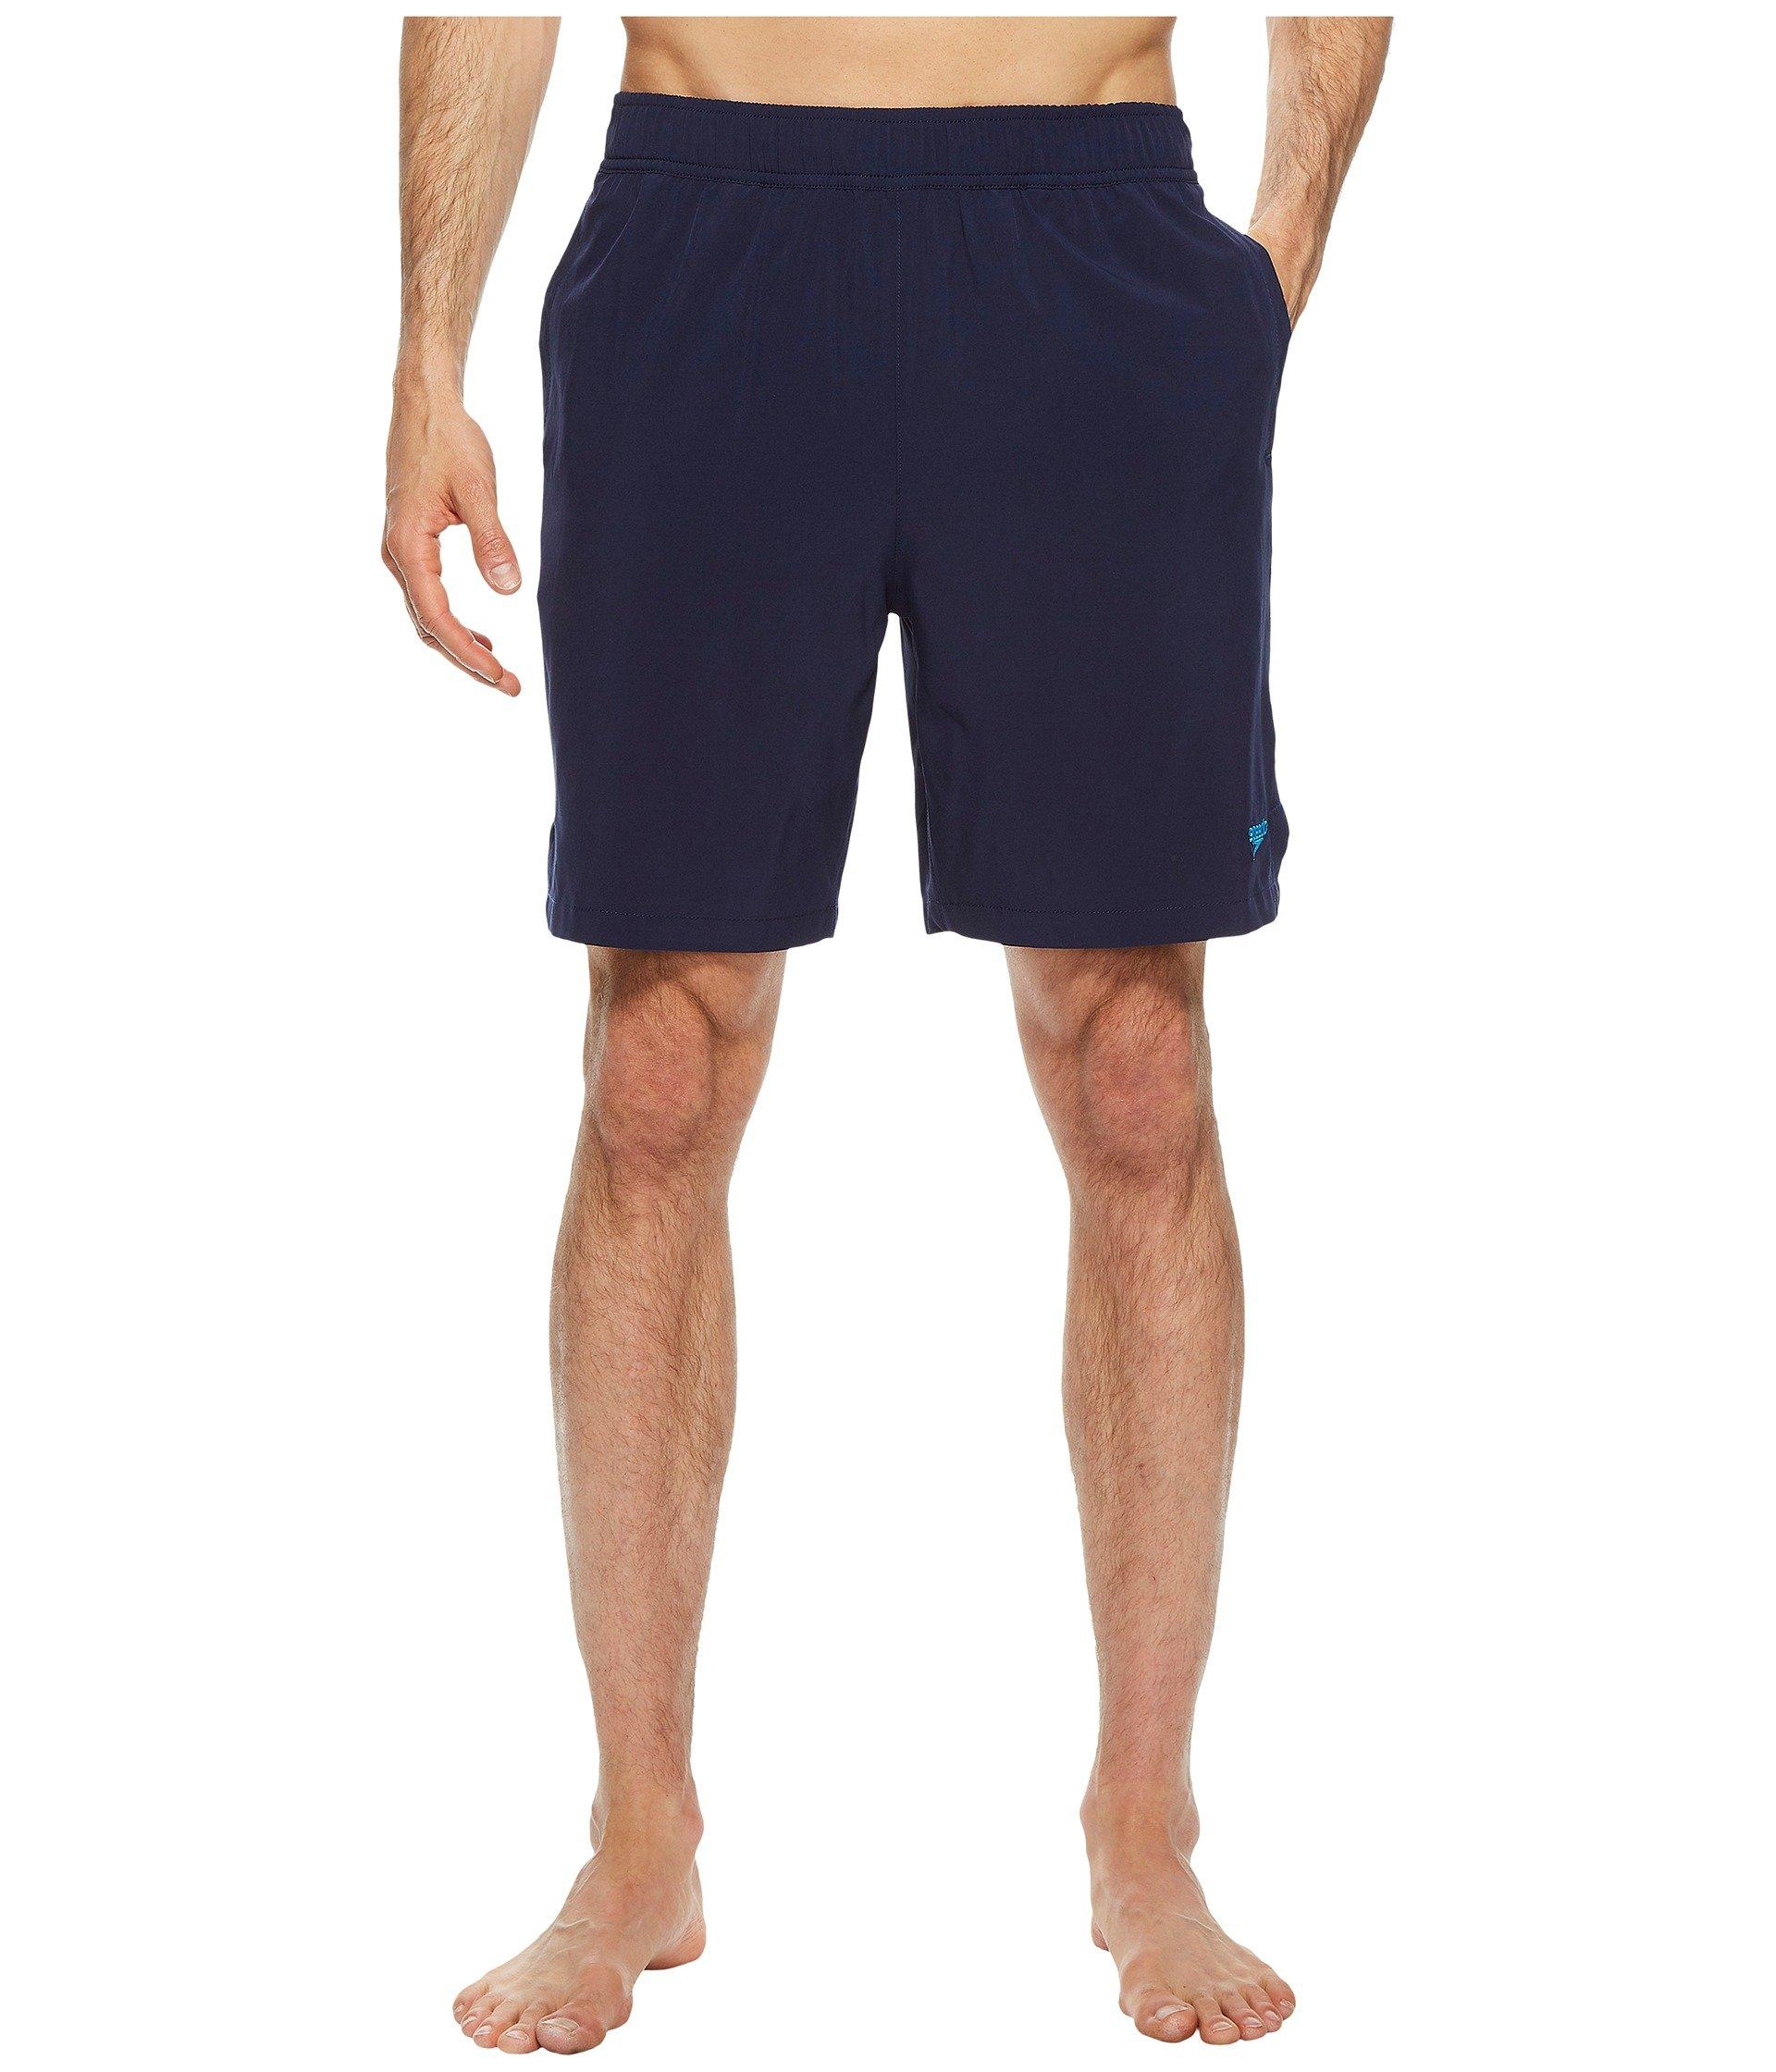 190b1dabe9 Speedo Hydro Vent Tech Volley ( Navy) Swimwear in Blue for Men - Lyst